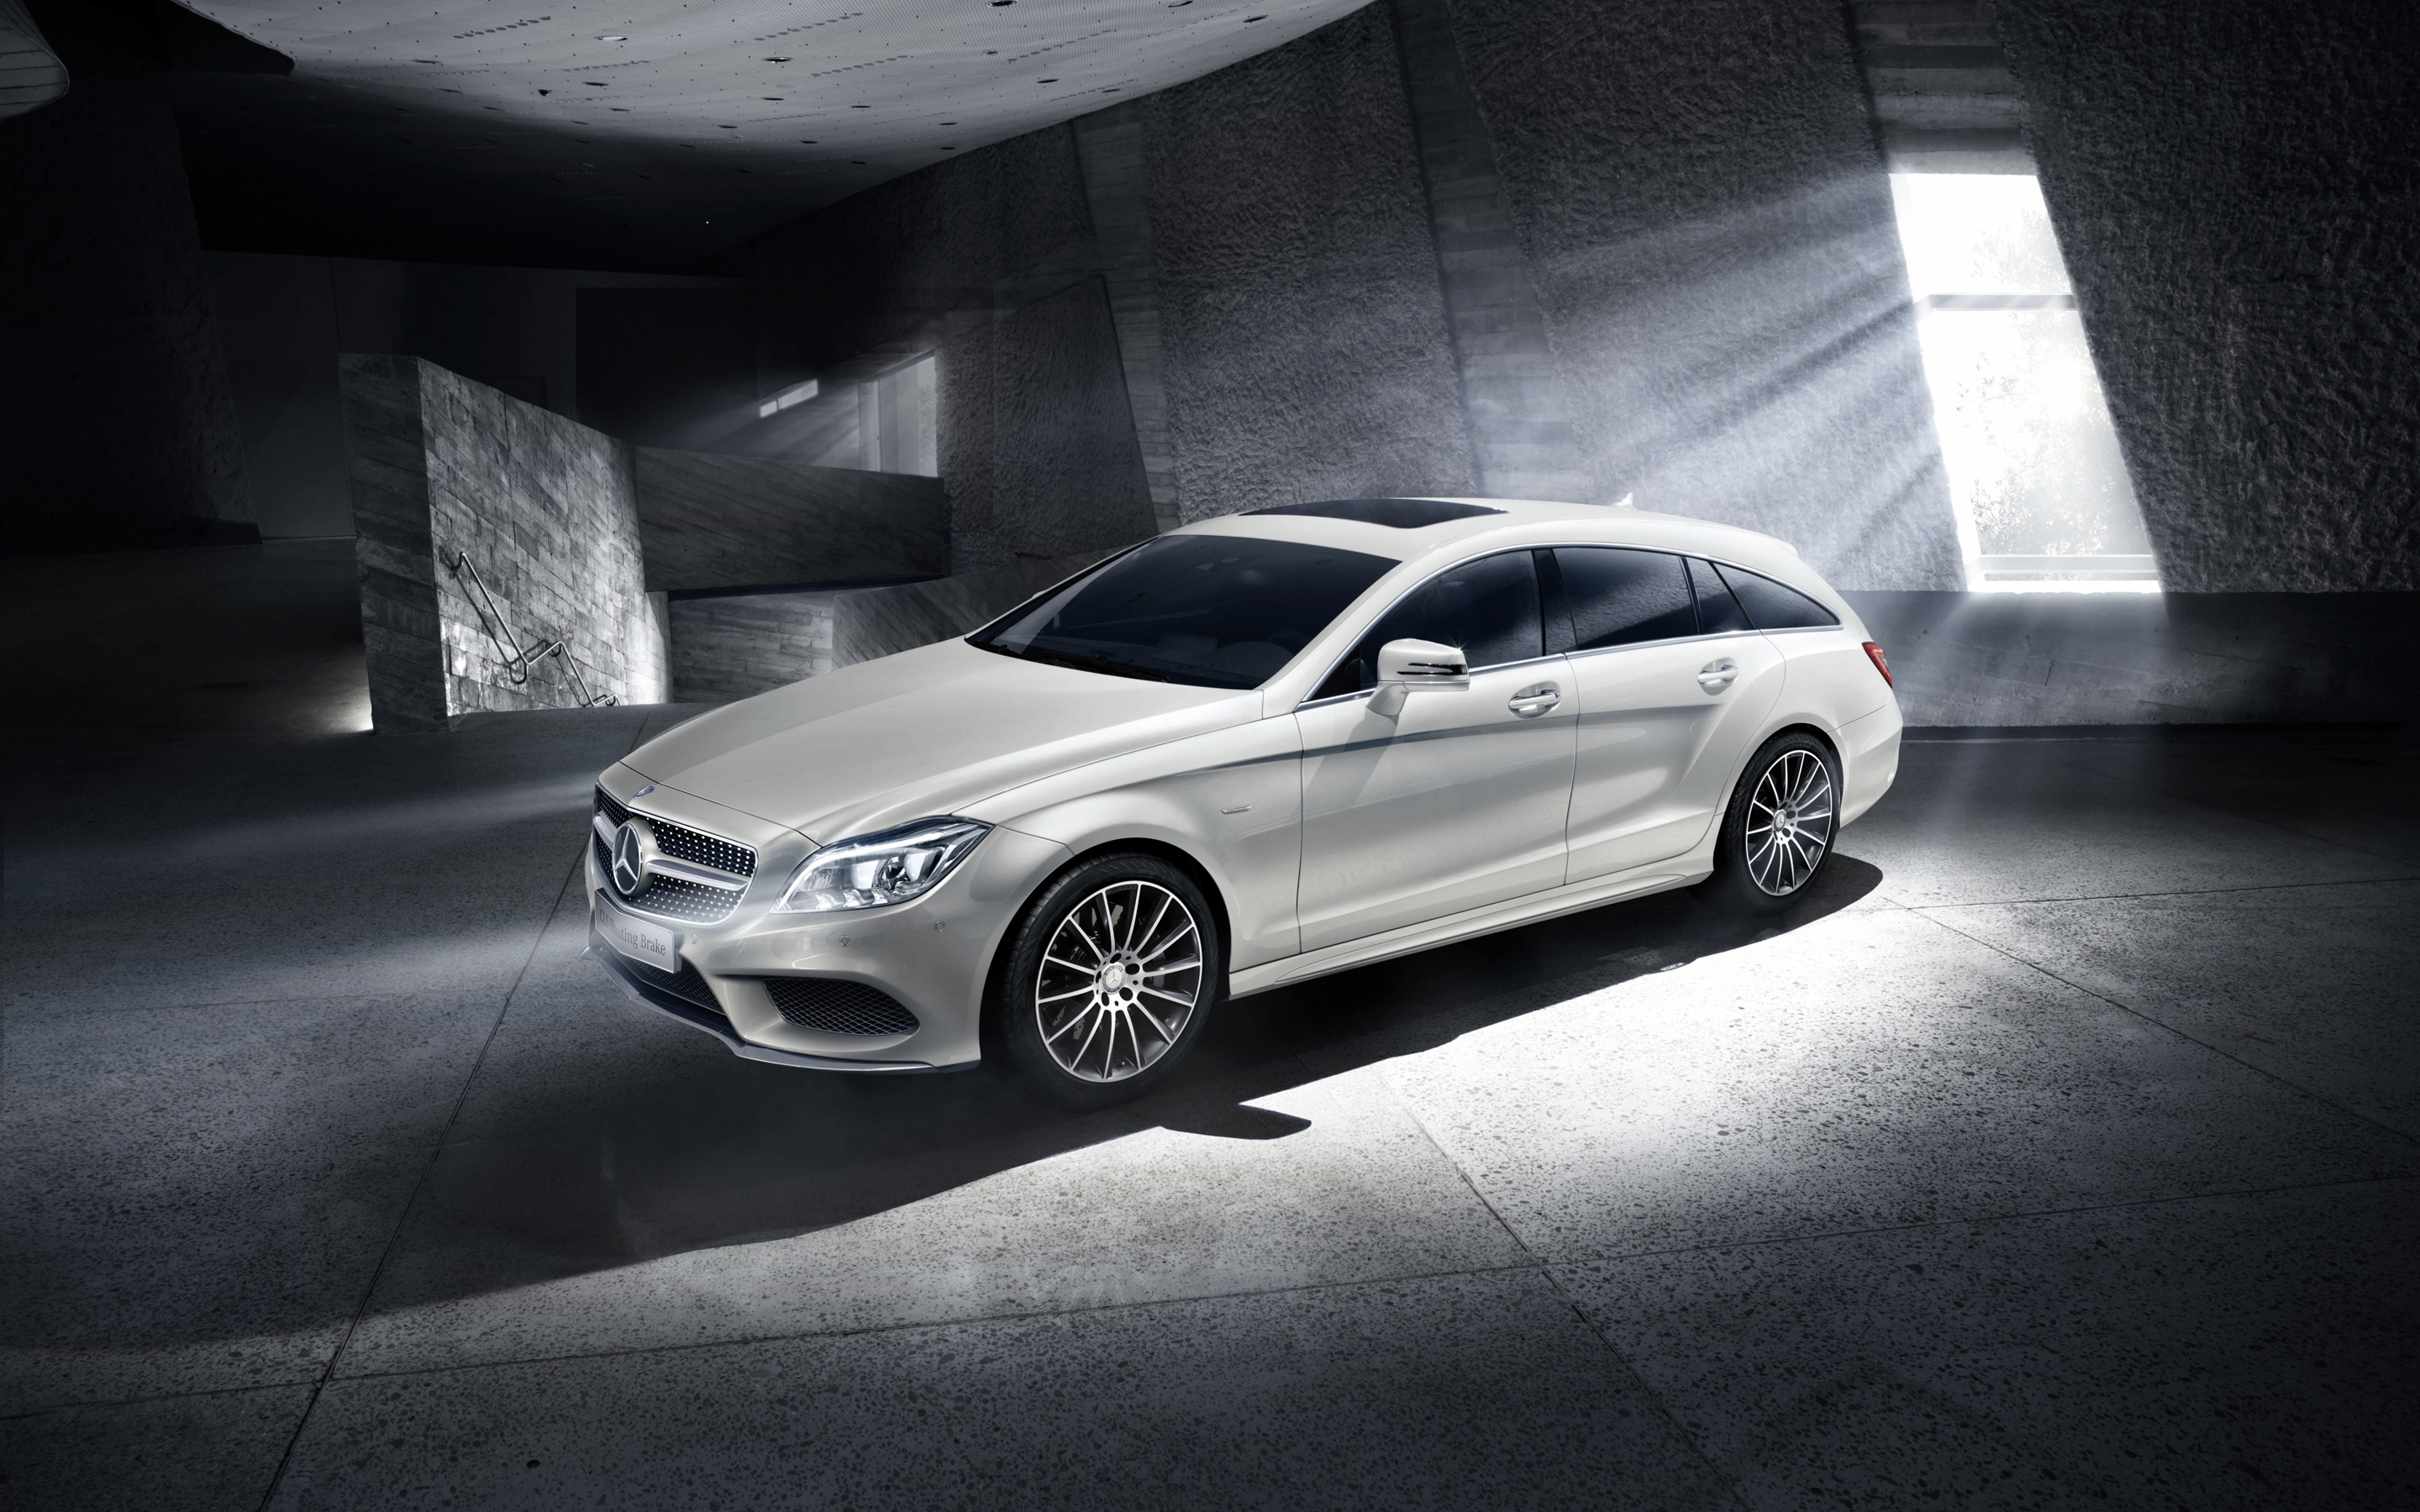 Mercedes Benz CLS Shooting Brake Final Edition wallpaper